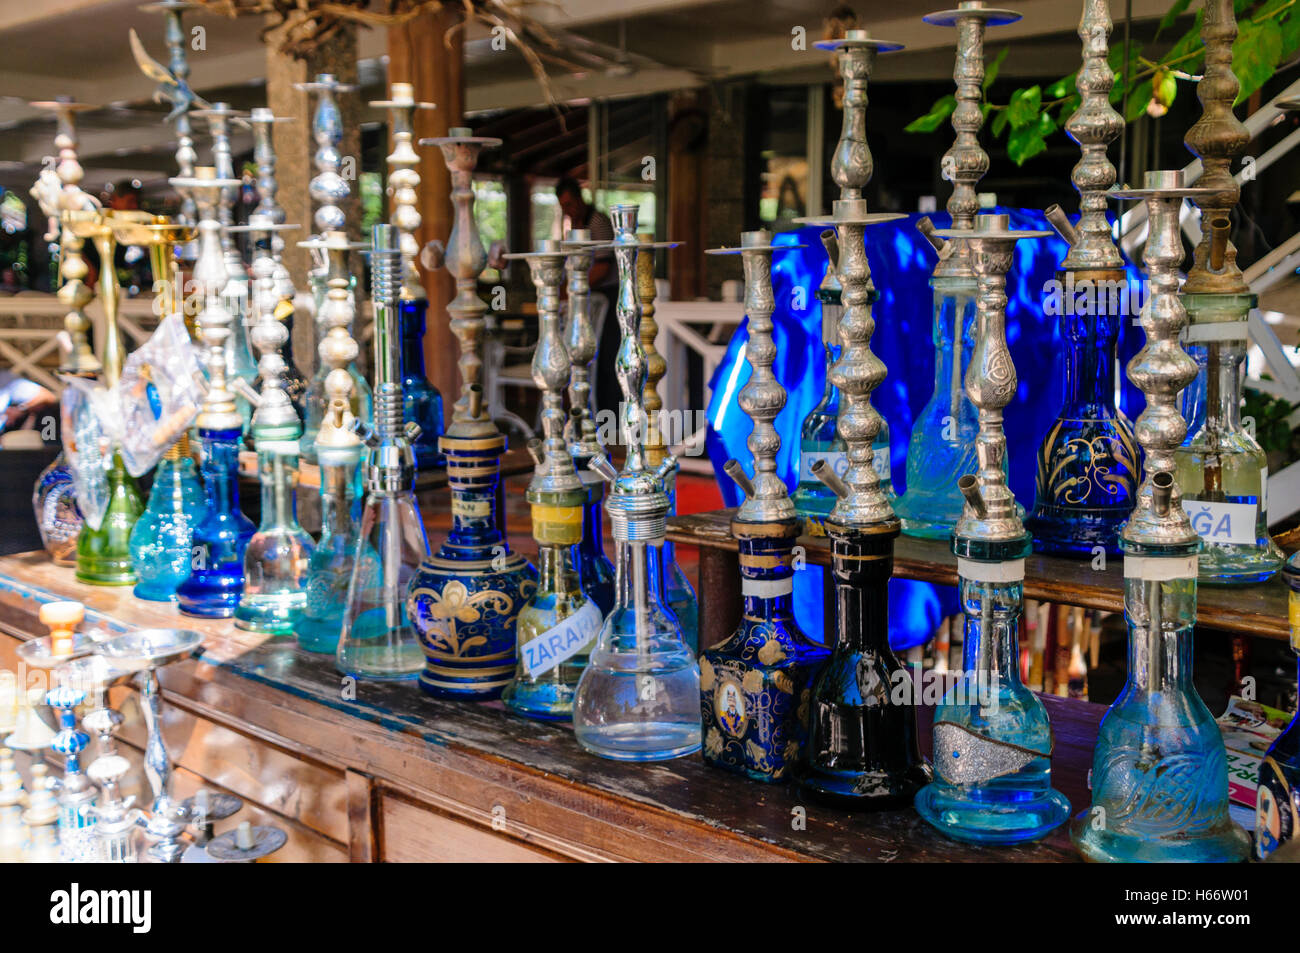 Shisha pipes on a shelf in the Hookah Lounge of a Turkish restaurant. - Stock Image